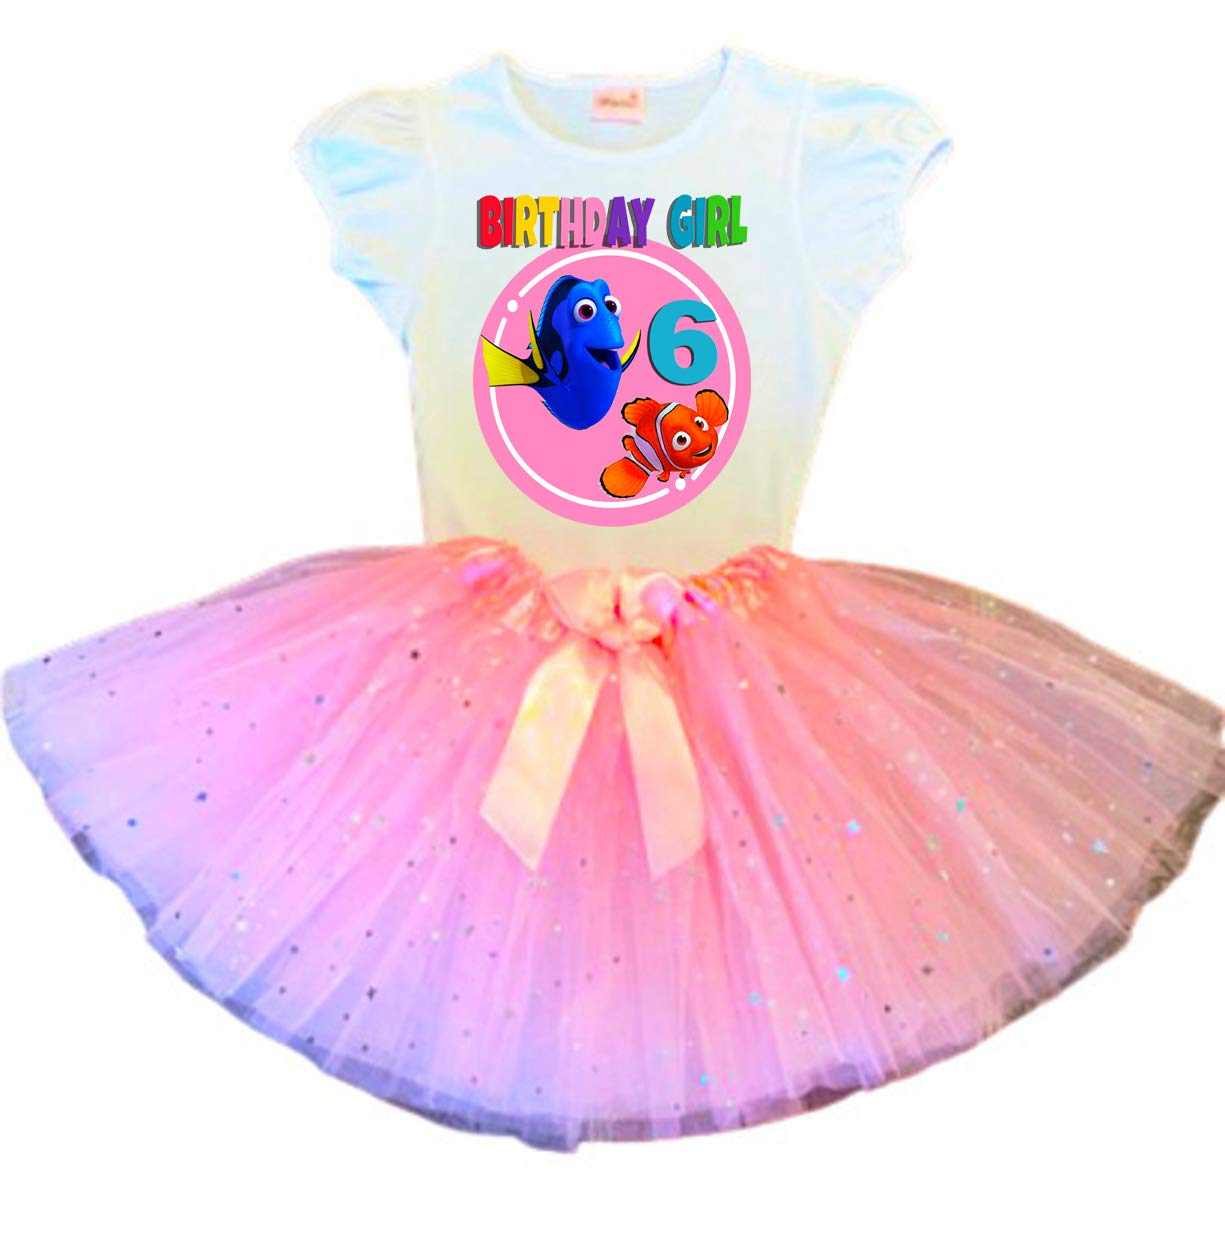 Dory and Nemo Birthday Tutu Dress Pink 6th O New Orleans Mall Party Popular brand in the world